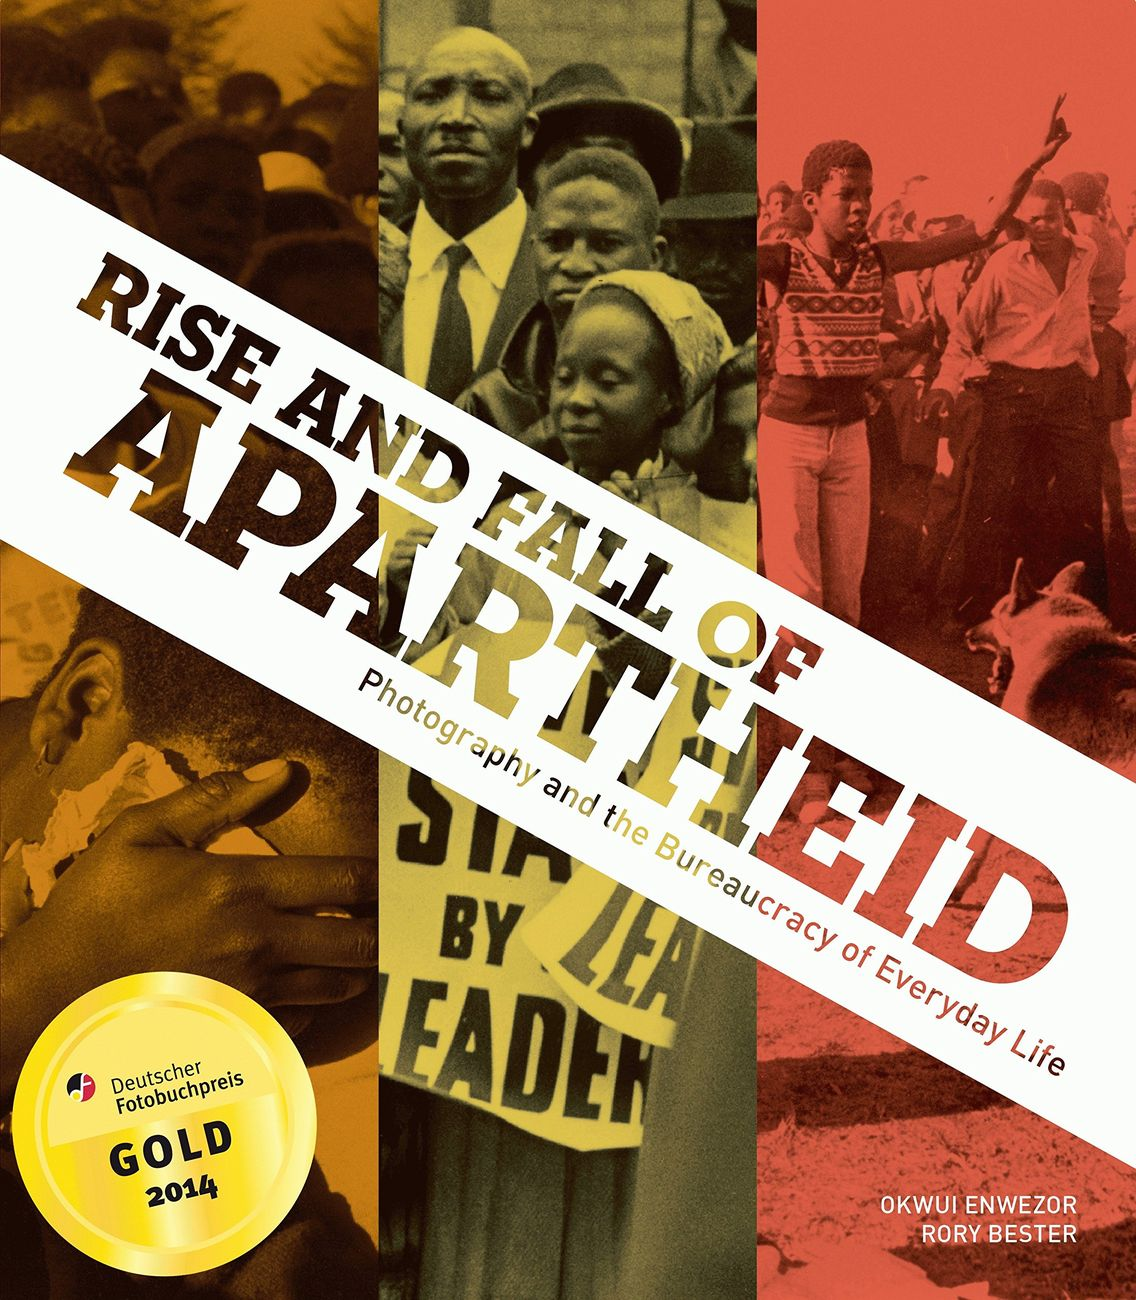 Okwui Enwezor & Rory Bester (eds.) – Rise and Fall of Apartheid. Photography and Bureaucracy of Everyday Life (Prestel, Monaco 2013)